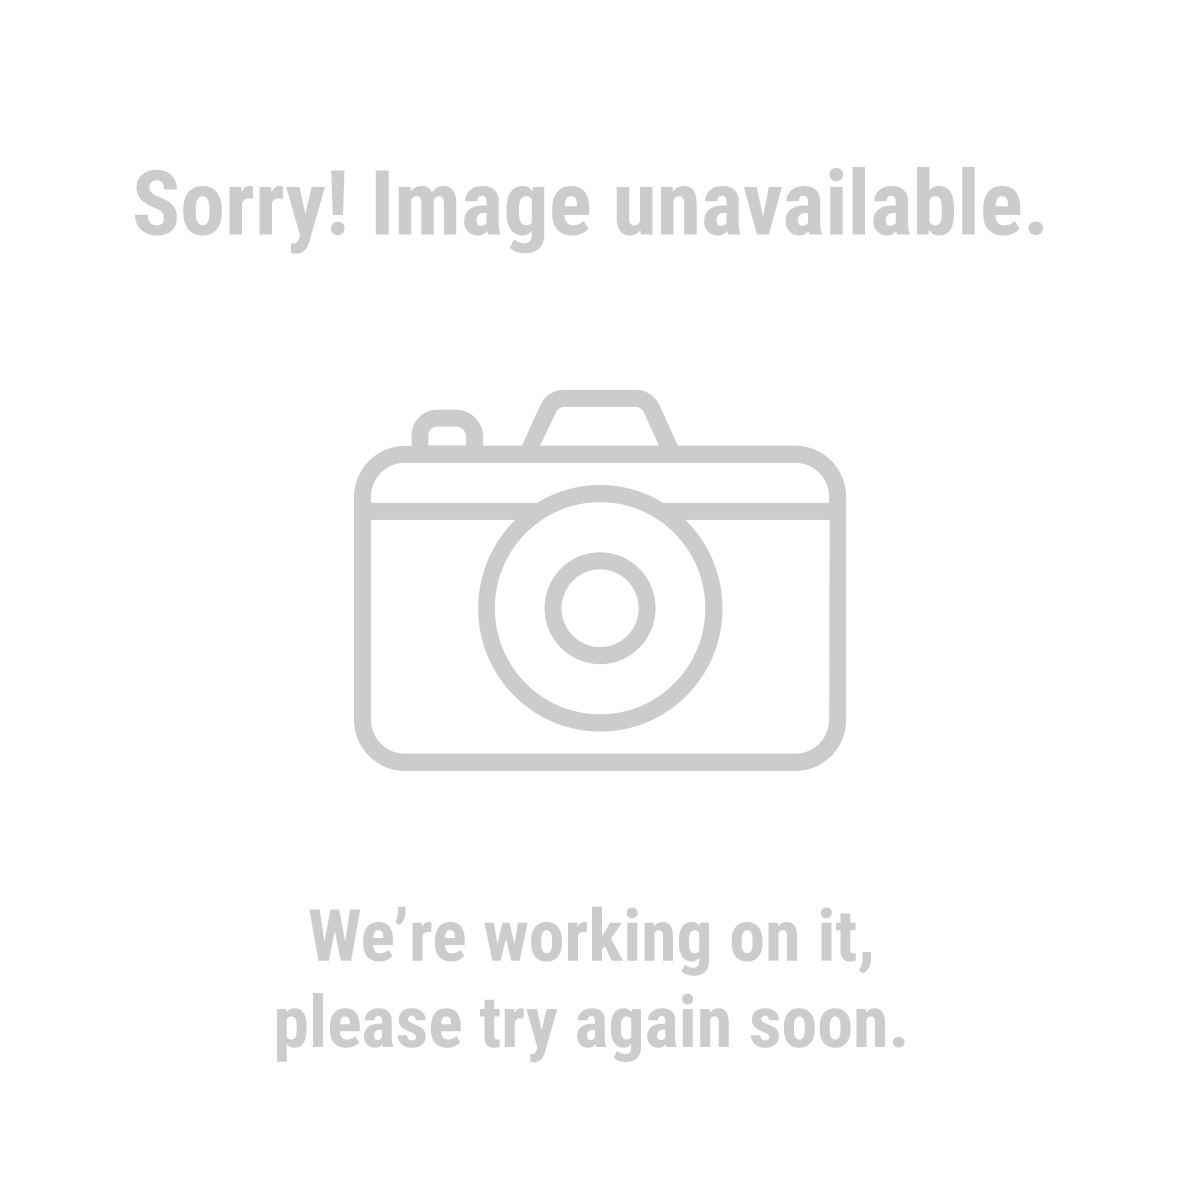 Pittsburgh 66443 Utility Knife with Ergonomic Grip